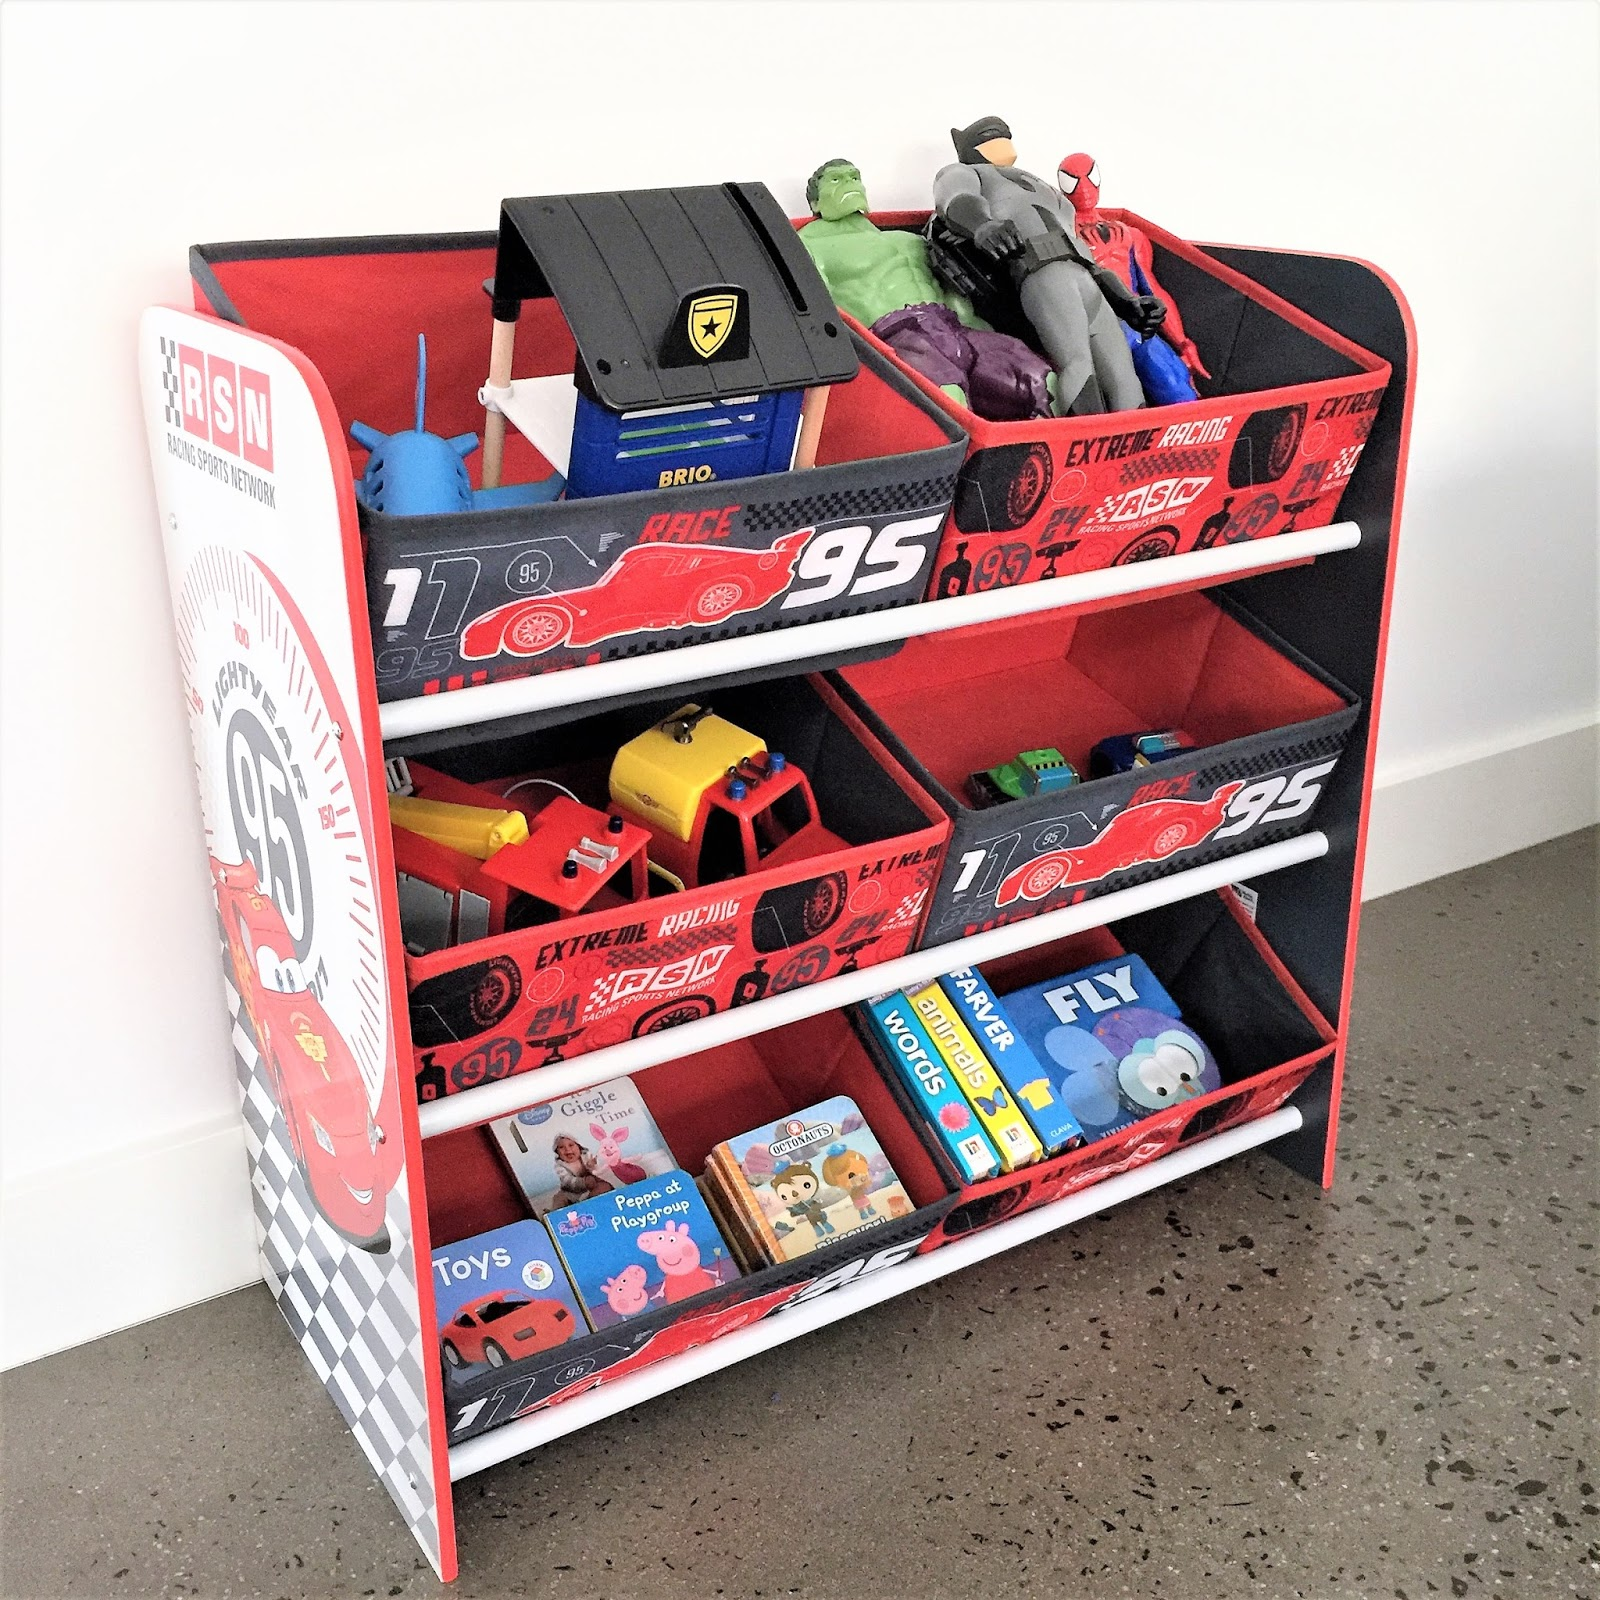 The storage bins can be used for all sorts of toys as well as a selection of lighter books so it is all neat and tidy and easy to find ... & PRODUCT REVIEW: WORLDS APART CARS 6 BIN STORAGE FROM CHILDSMART ...